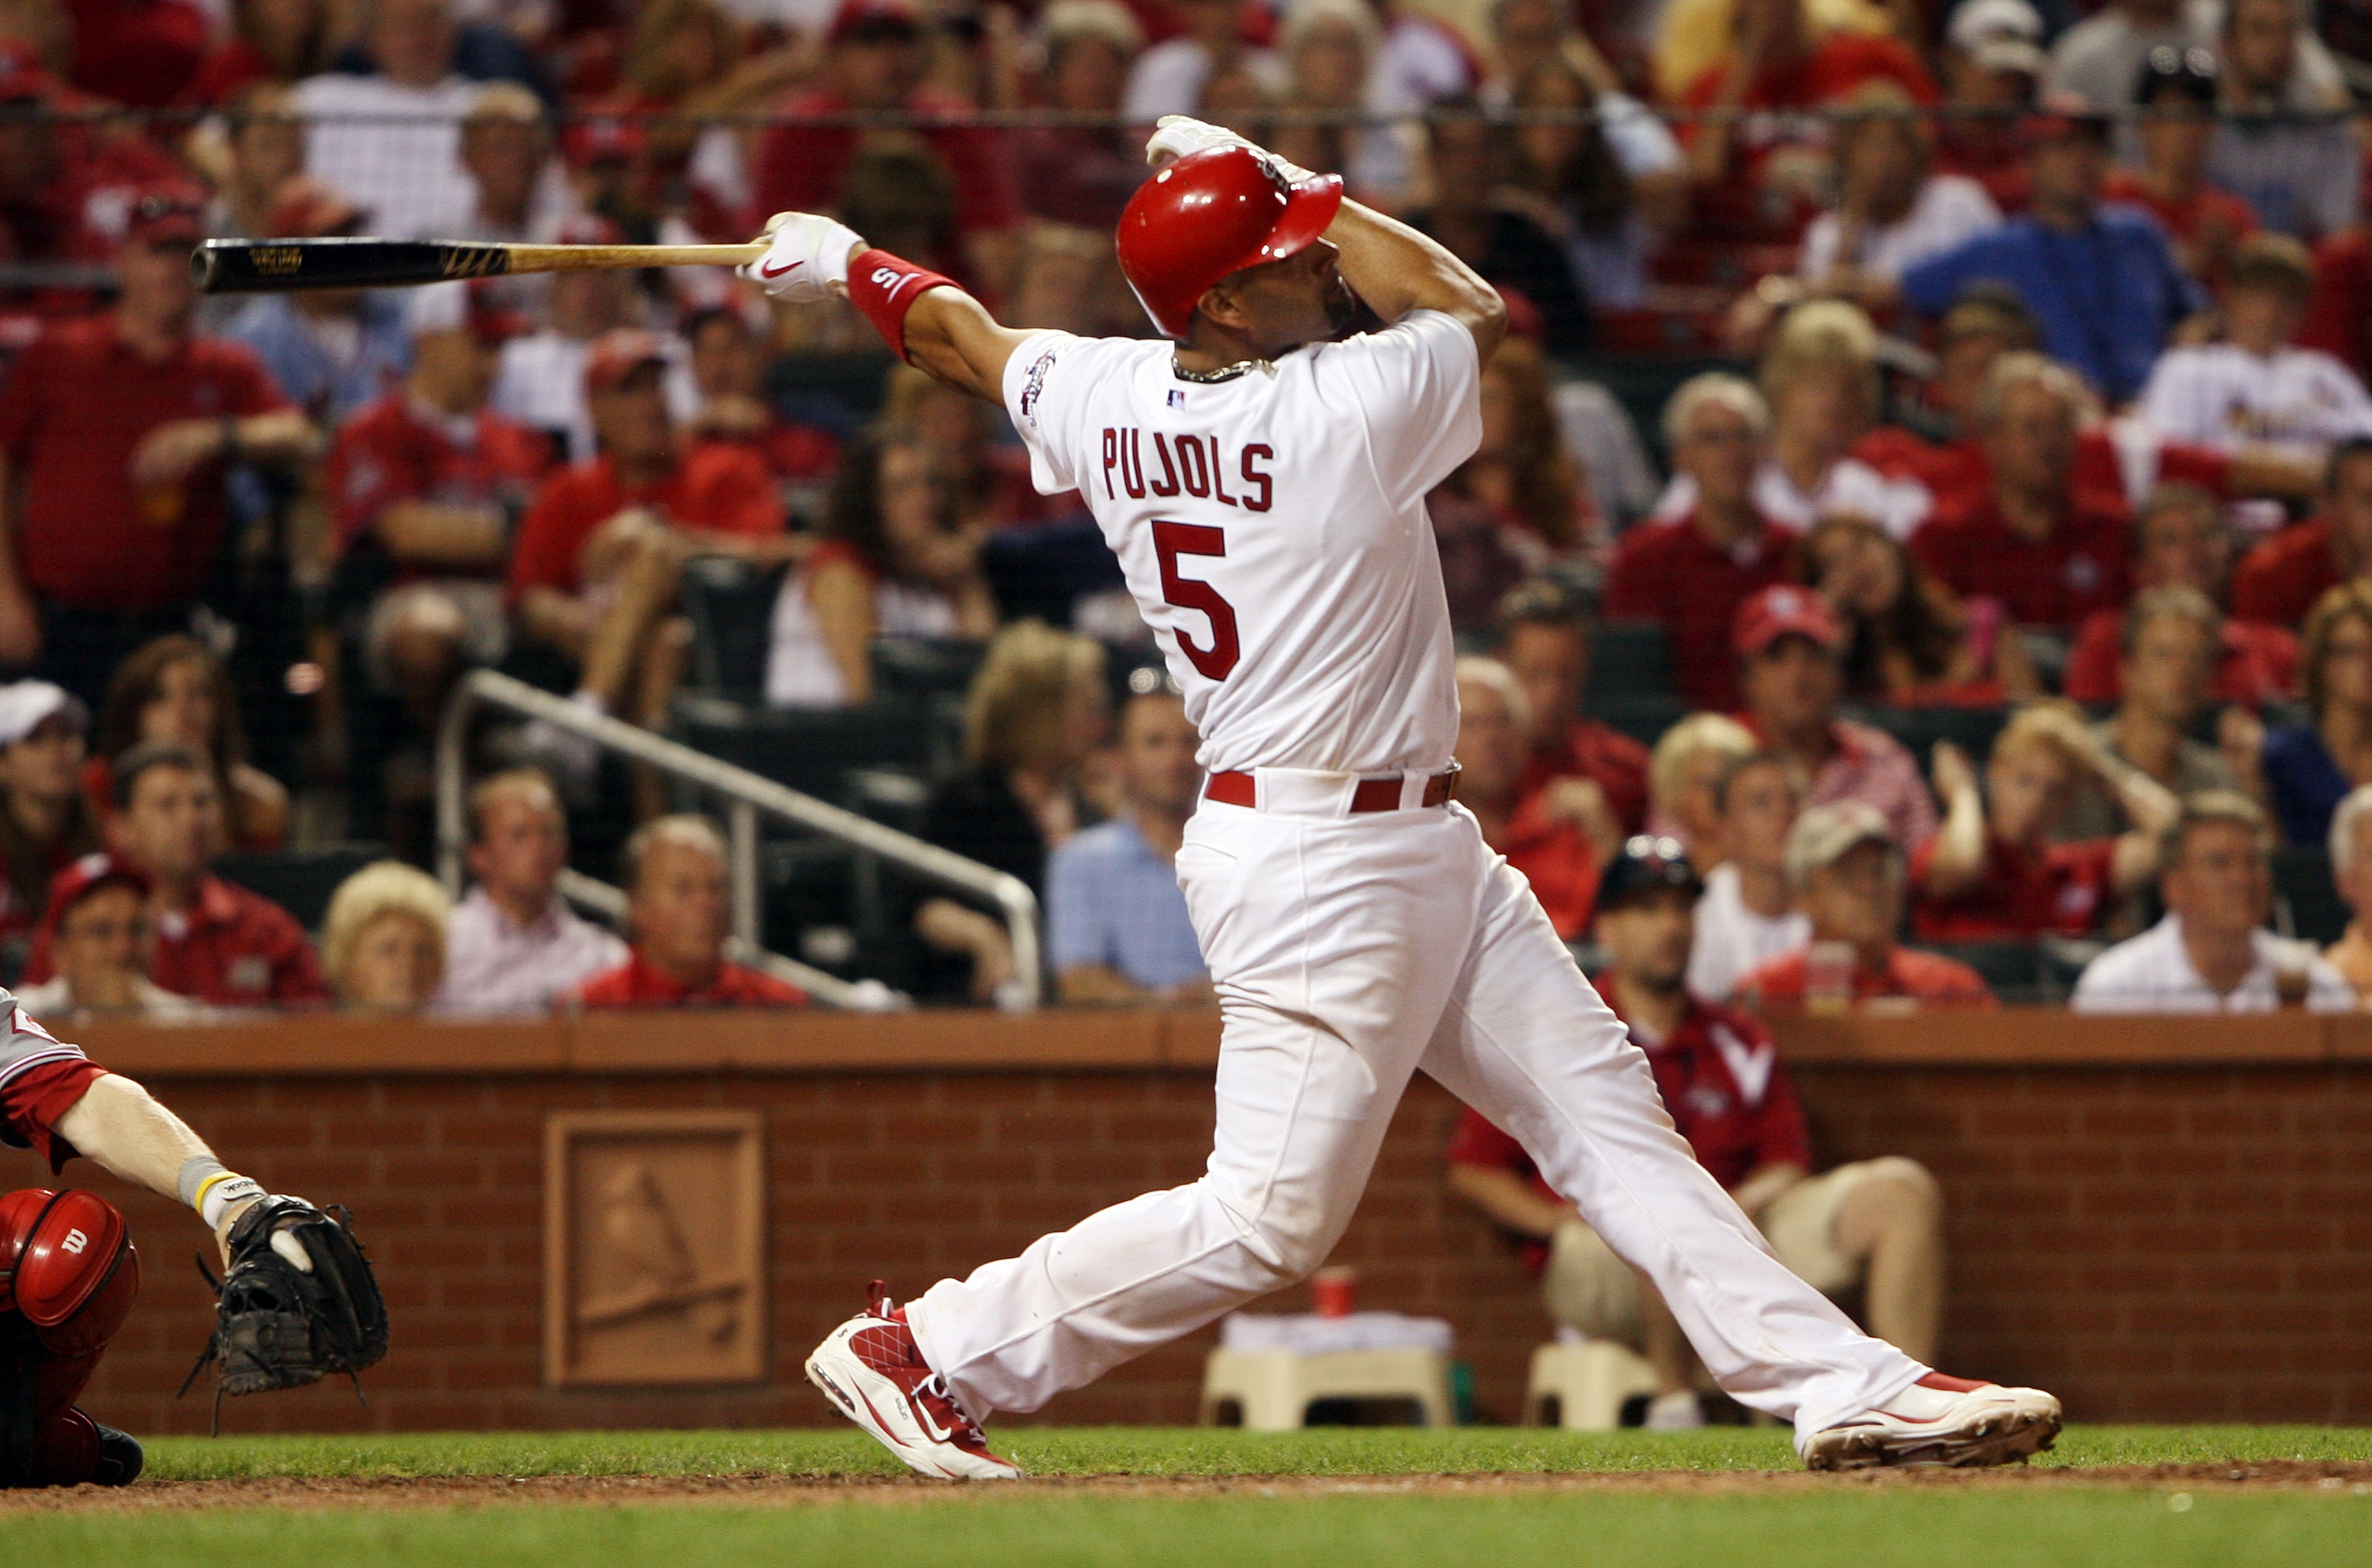 Pujols hits his 37th, Bill Greenblatt, UPI